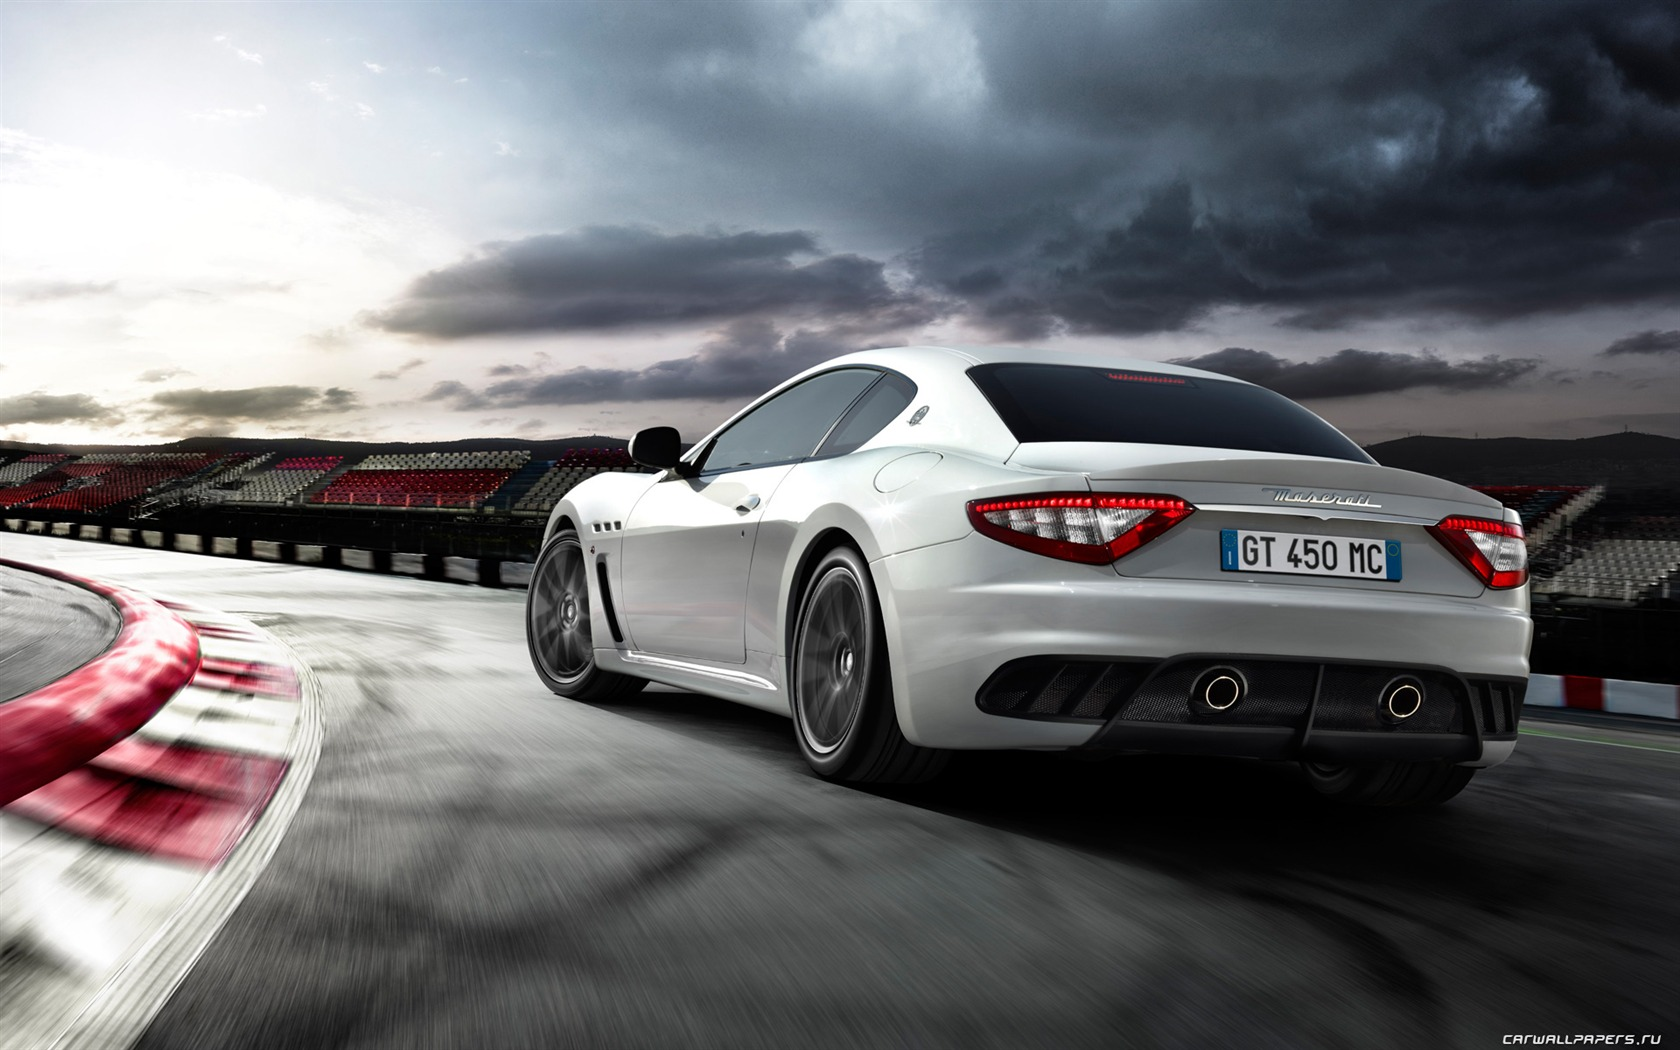 Maserati GranTurismo MC Stradale - 2010 HD wallpaper #5 - 1680x1050 ...